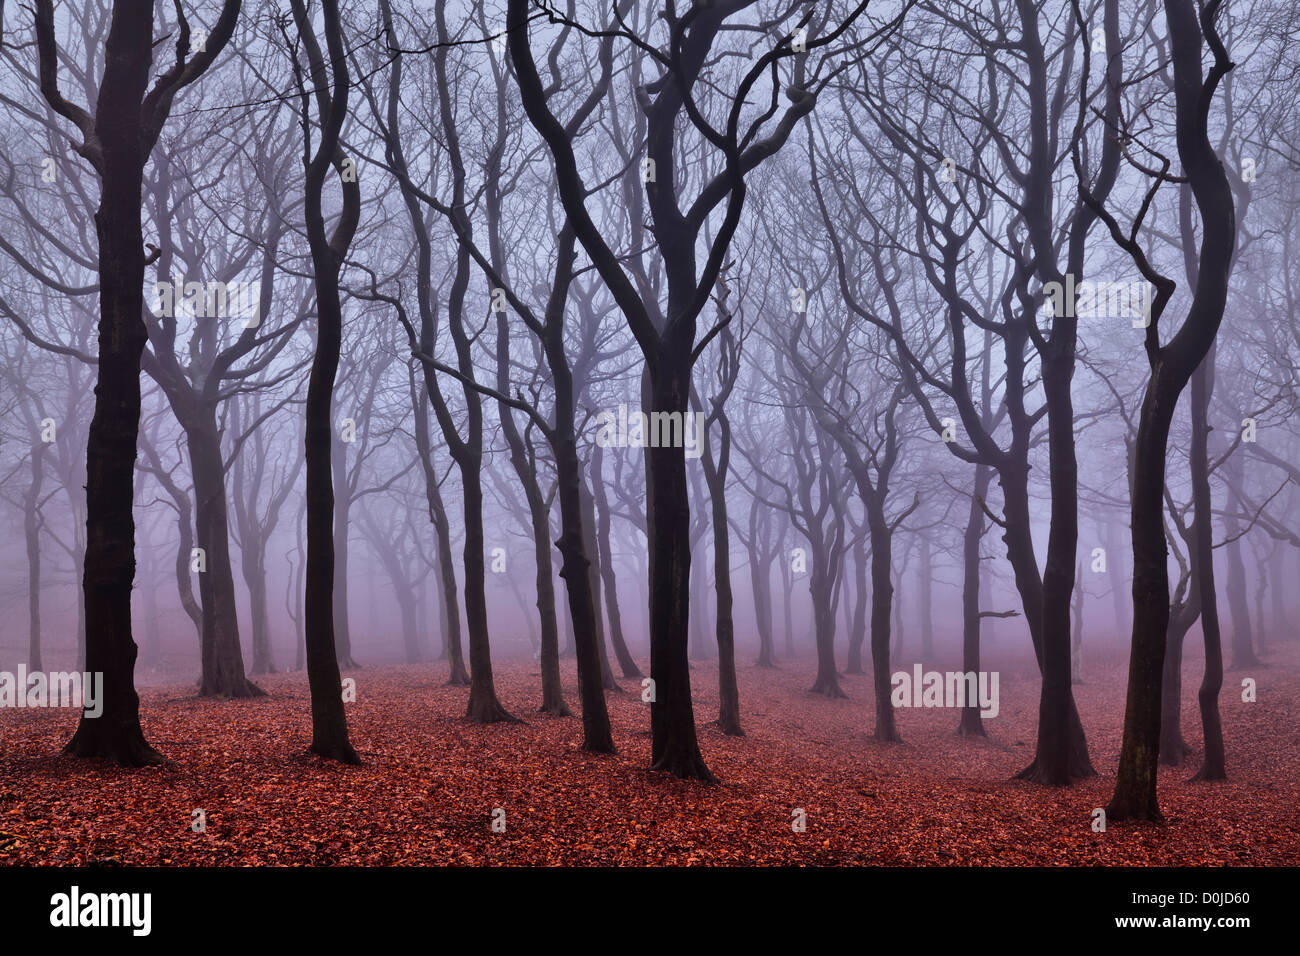 Mist hangs in Tandle Woods in Tandle Hill Country Park. - Stock Image